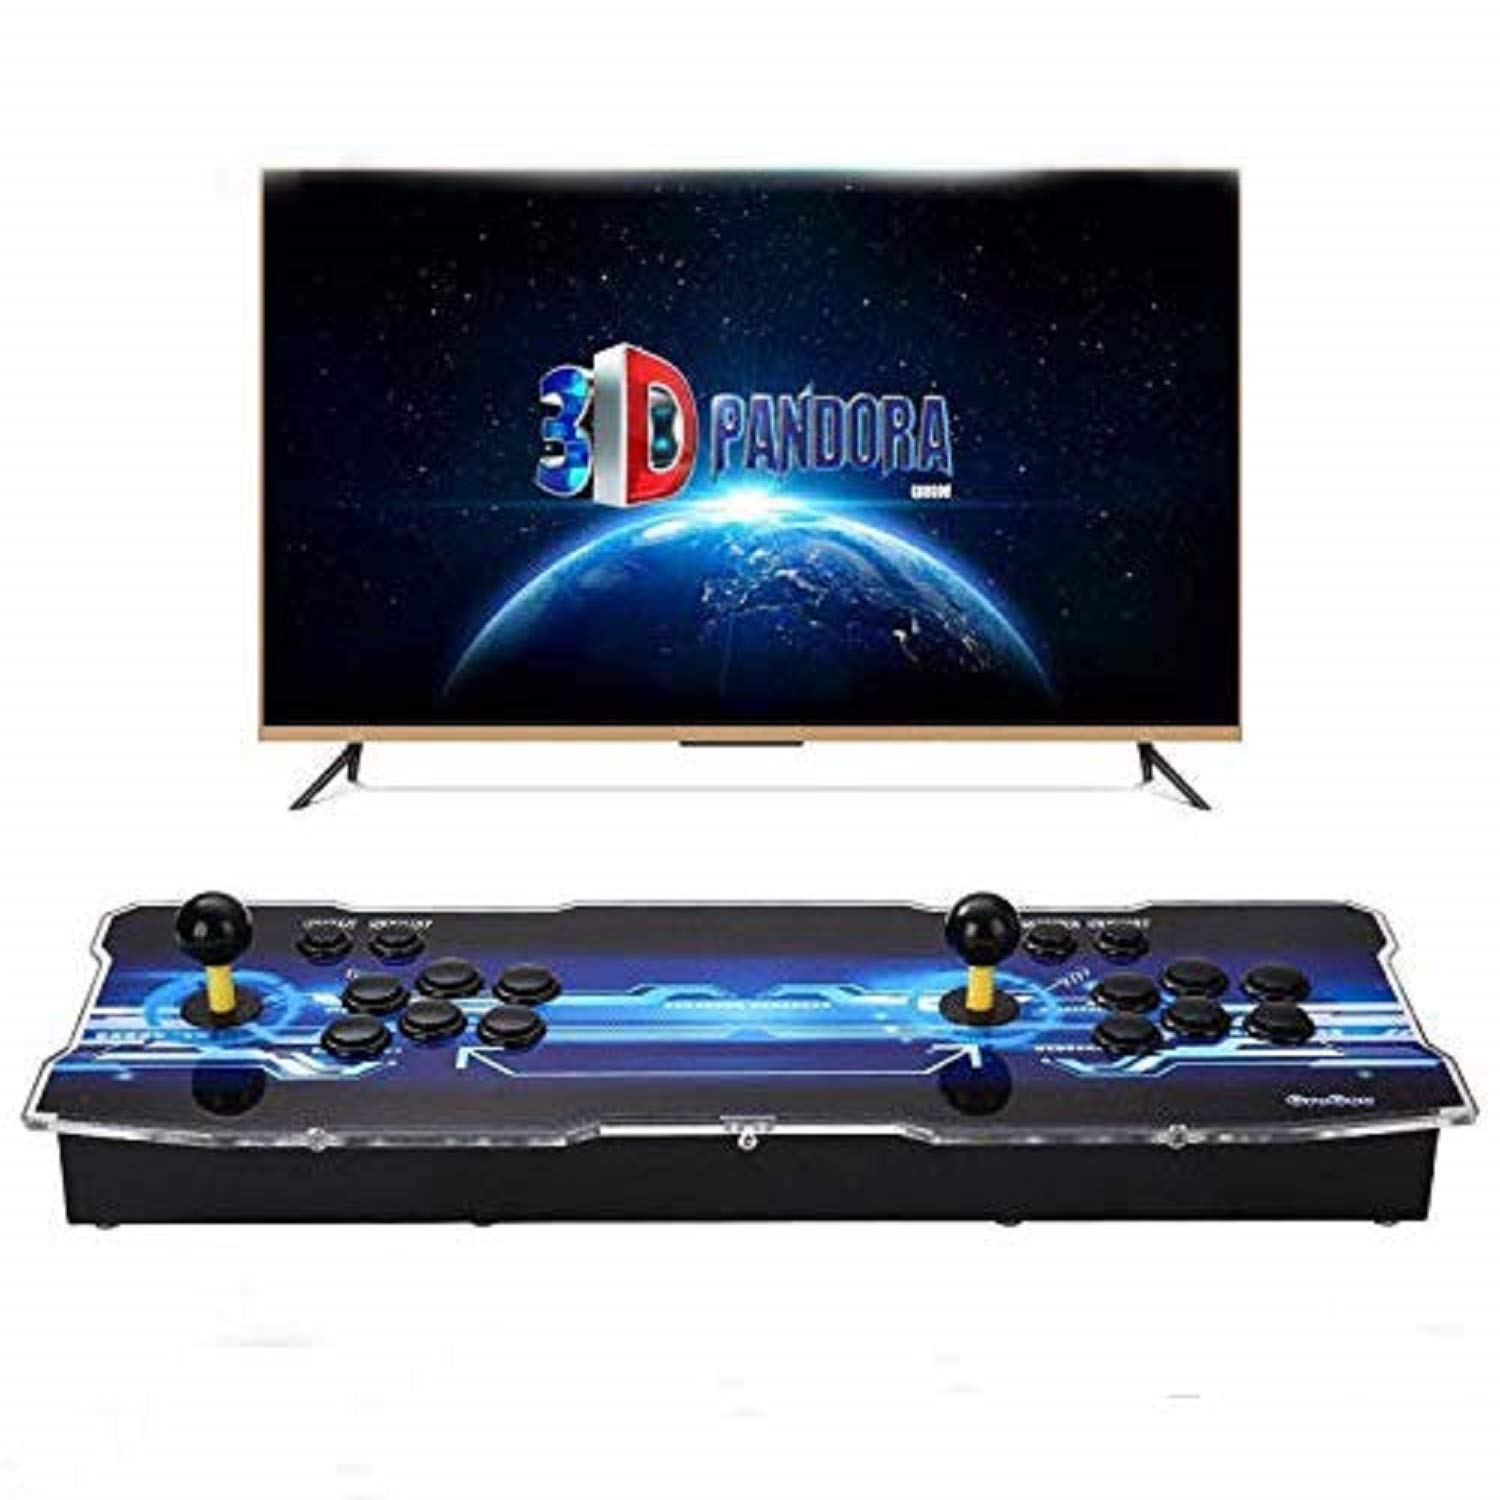 Spmywin 3D Pandora Box Arcade Video Game Console 1080P Game System Supports Alphabet Search Function User Add Games Function Advanced CPU